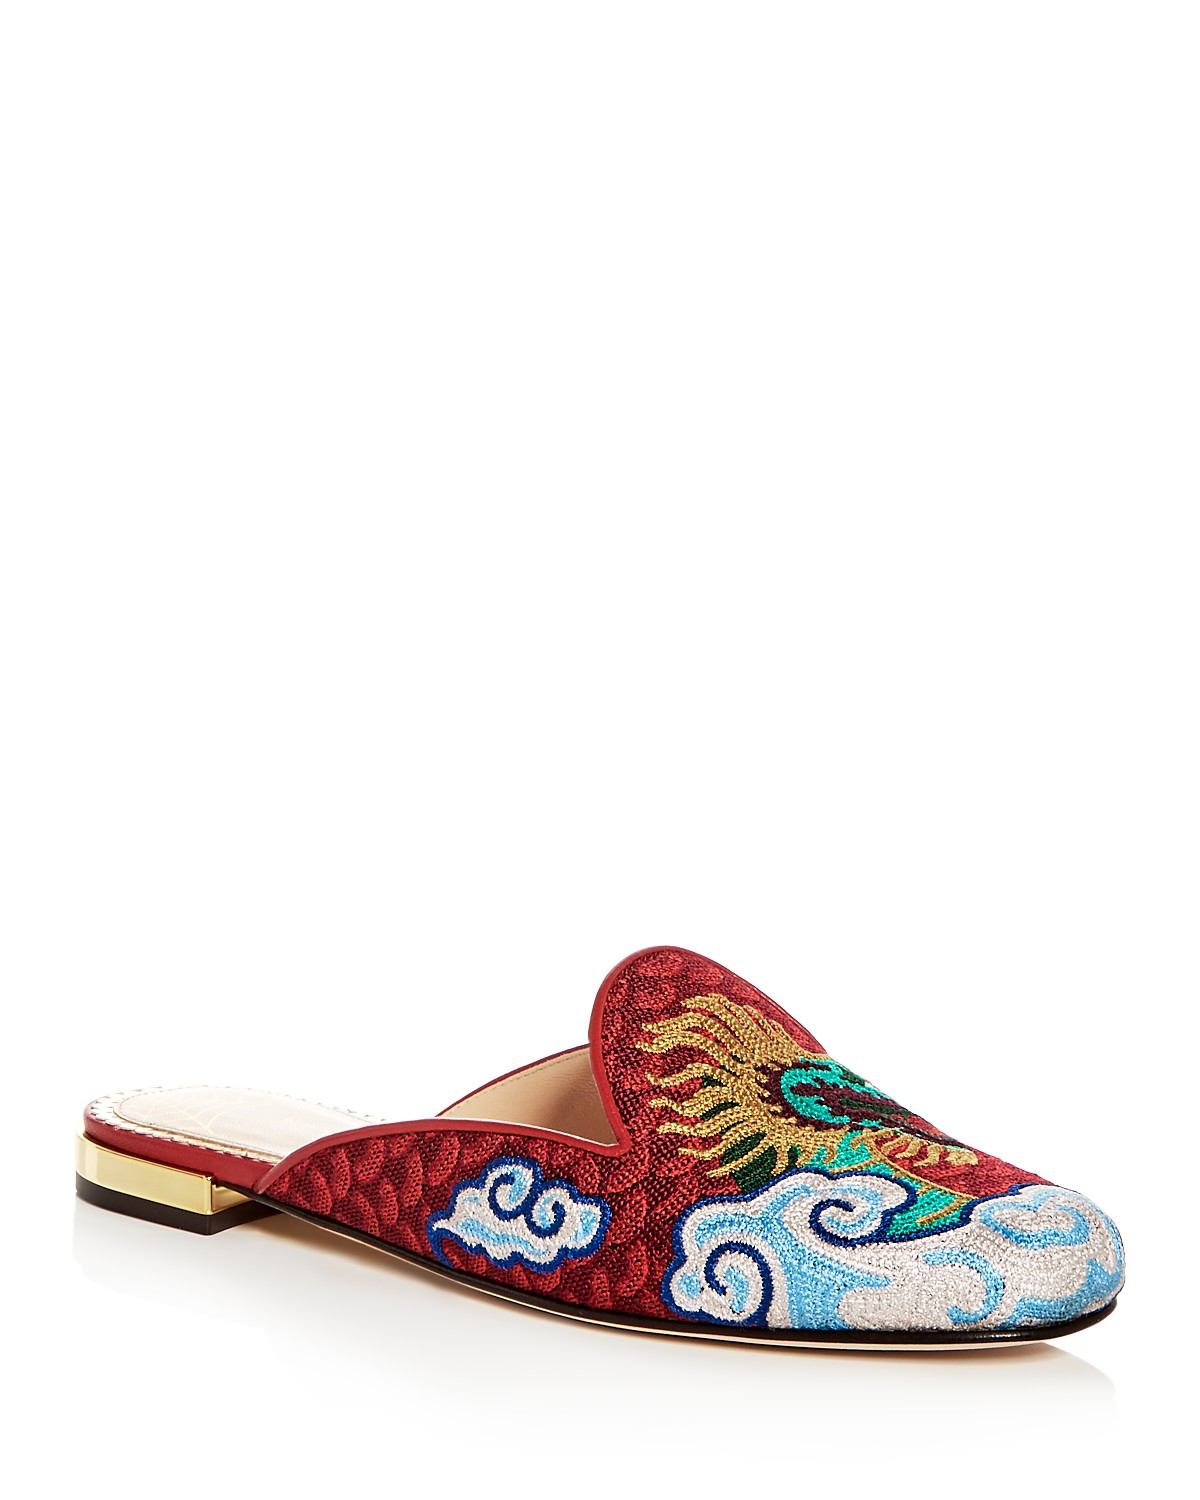 Charlotte Olympia Women's Dragon Embroidered Mules